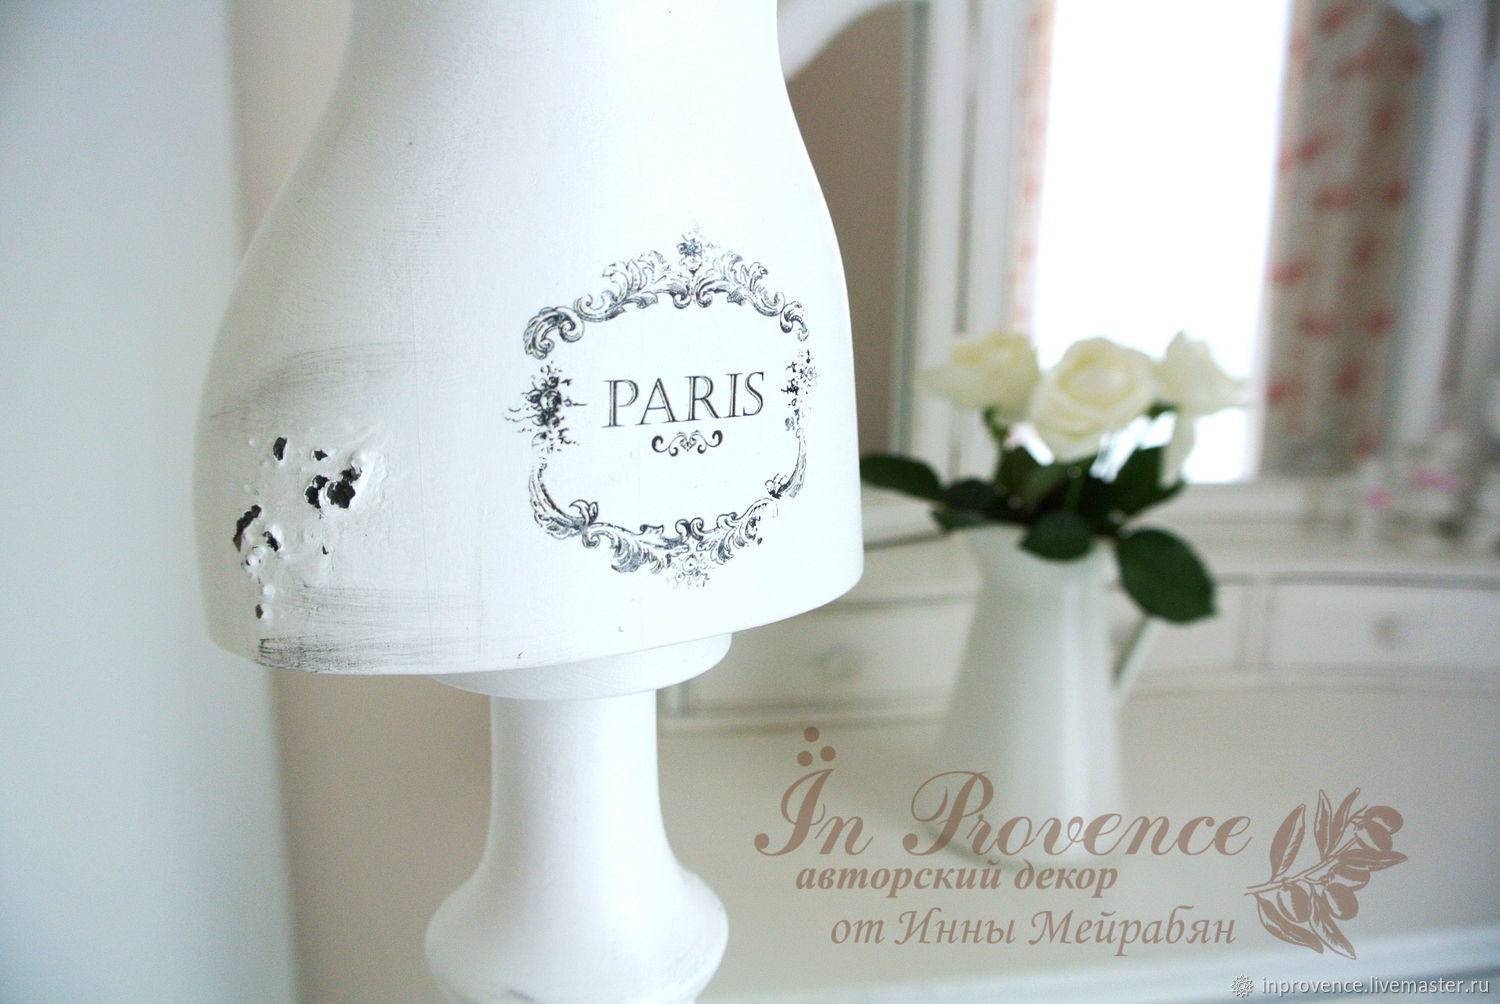 The floor lamp in the French style. Interior decor in vintage style. Floor lamp to buy.